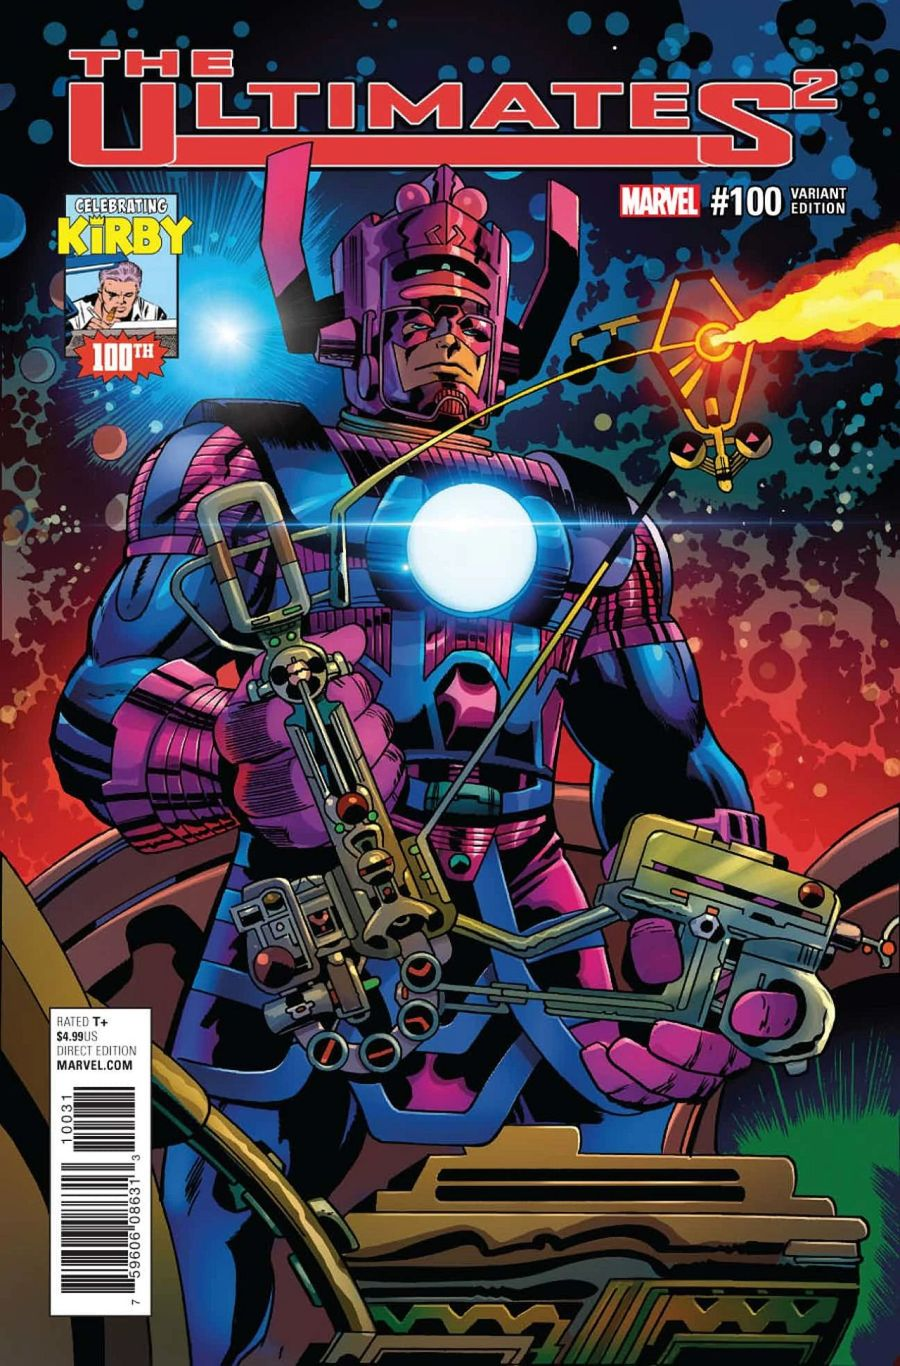 The Ultimates^2 #100